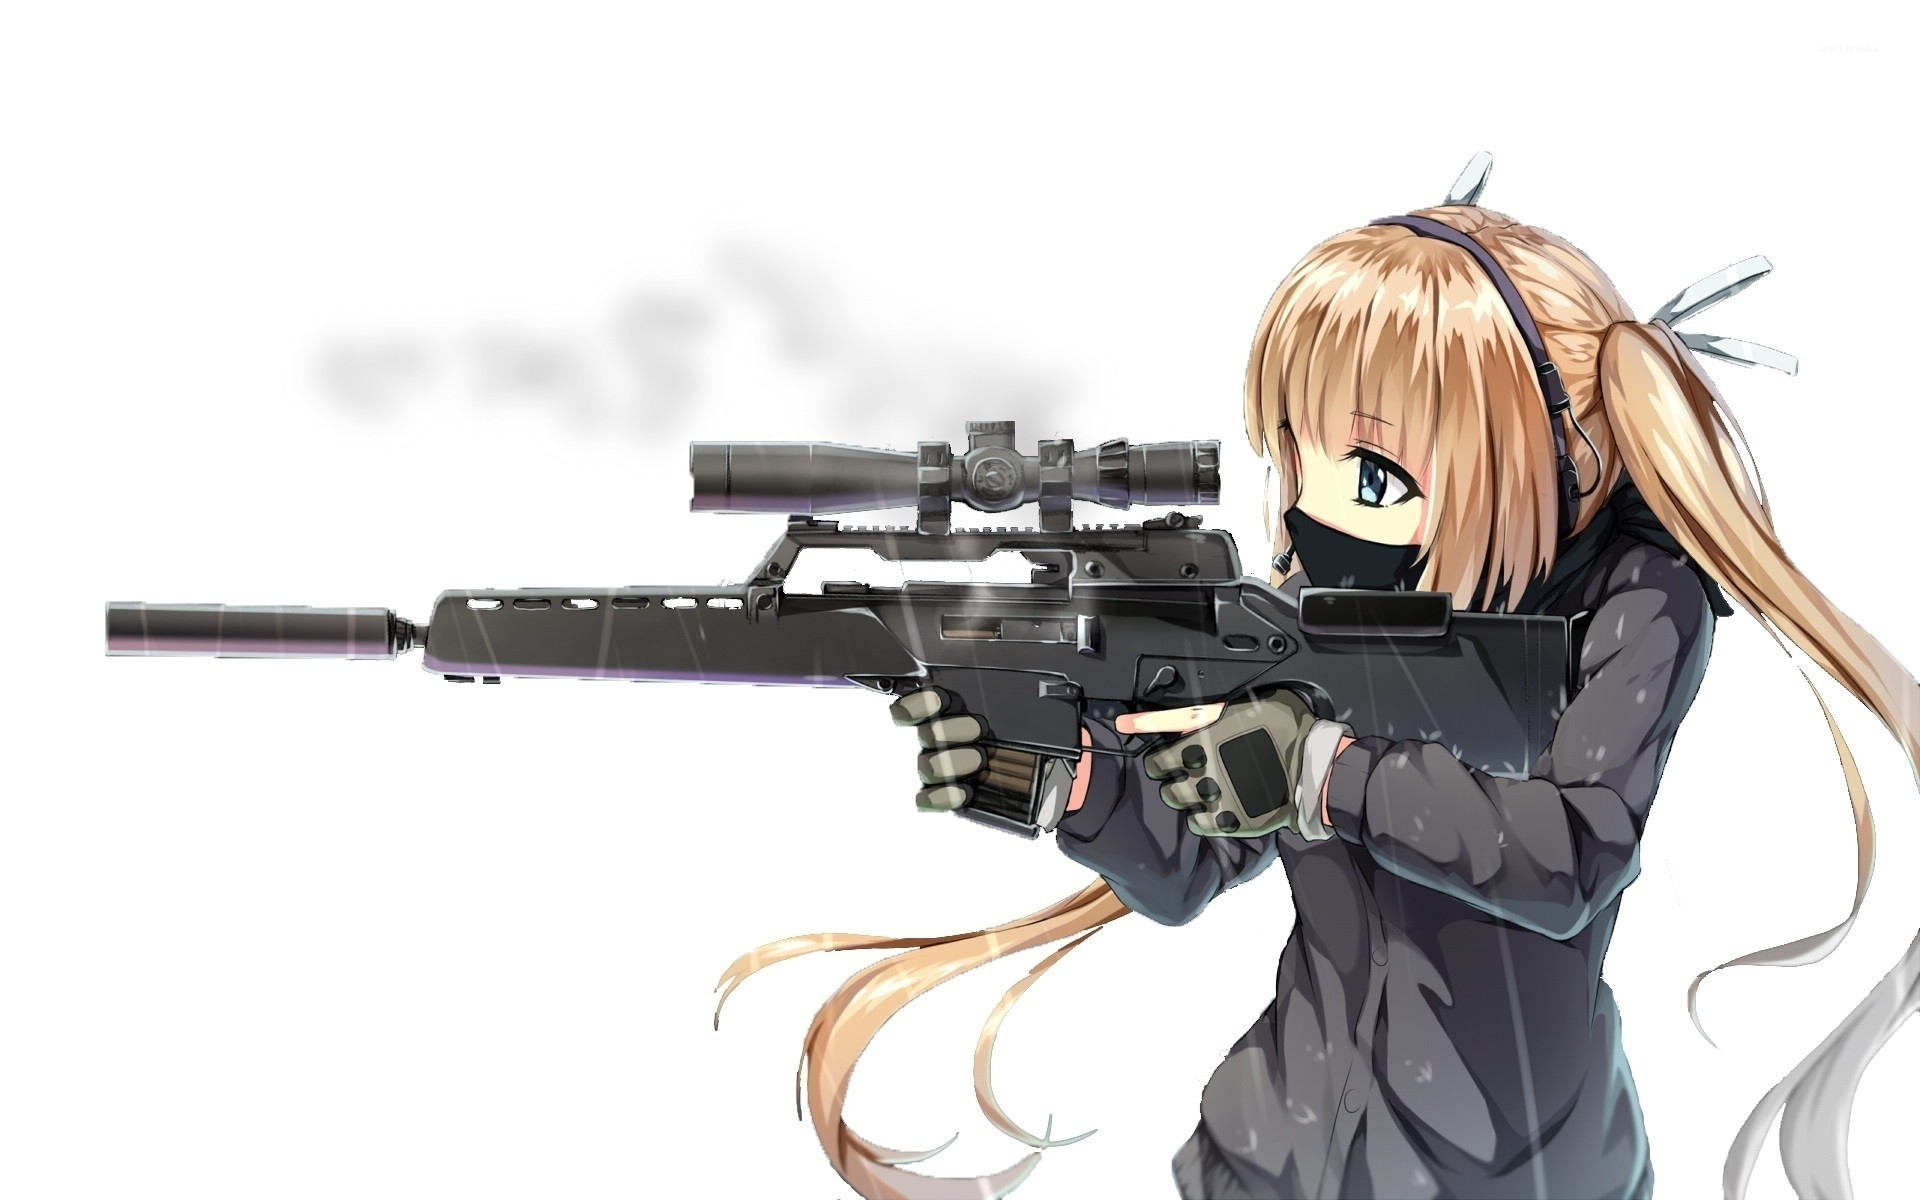 1920x1200 Cute sniper wallpaper